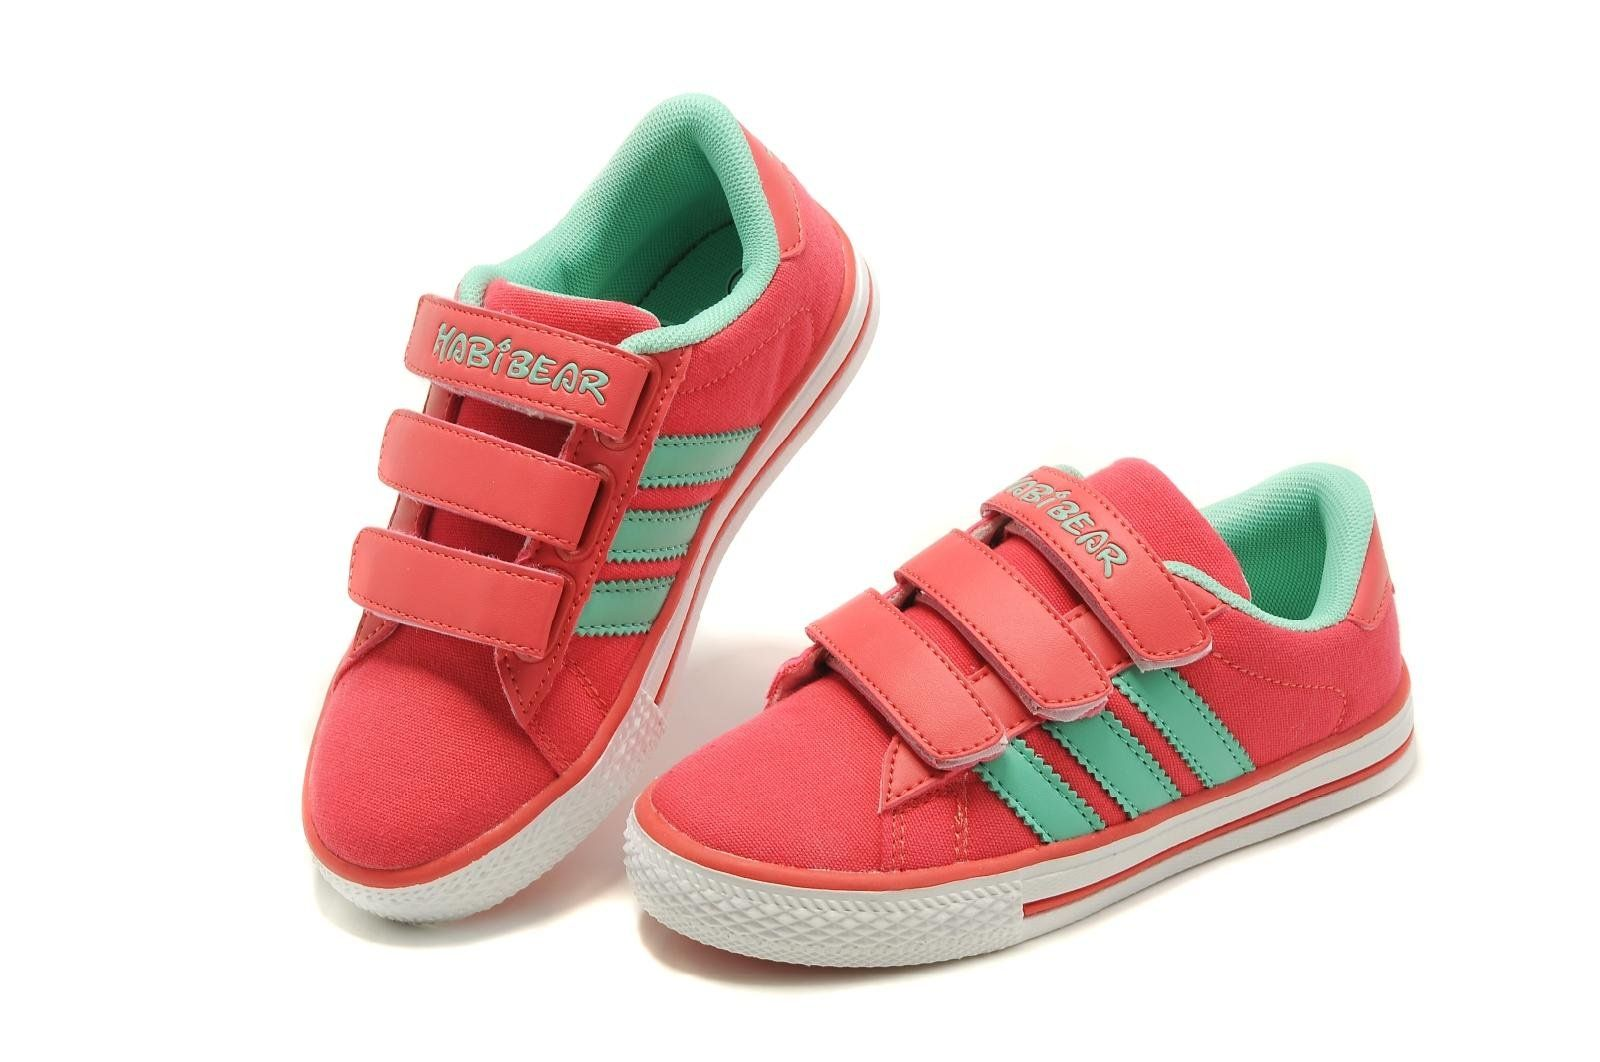 online store 0b9ac 3a239 kids shoes  SHOES  Pinterest  Sneakers, Kids sneakers and Sh